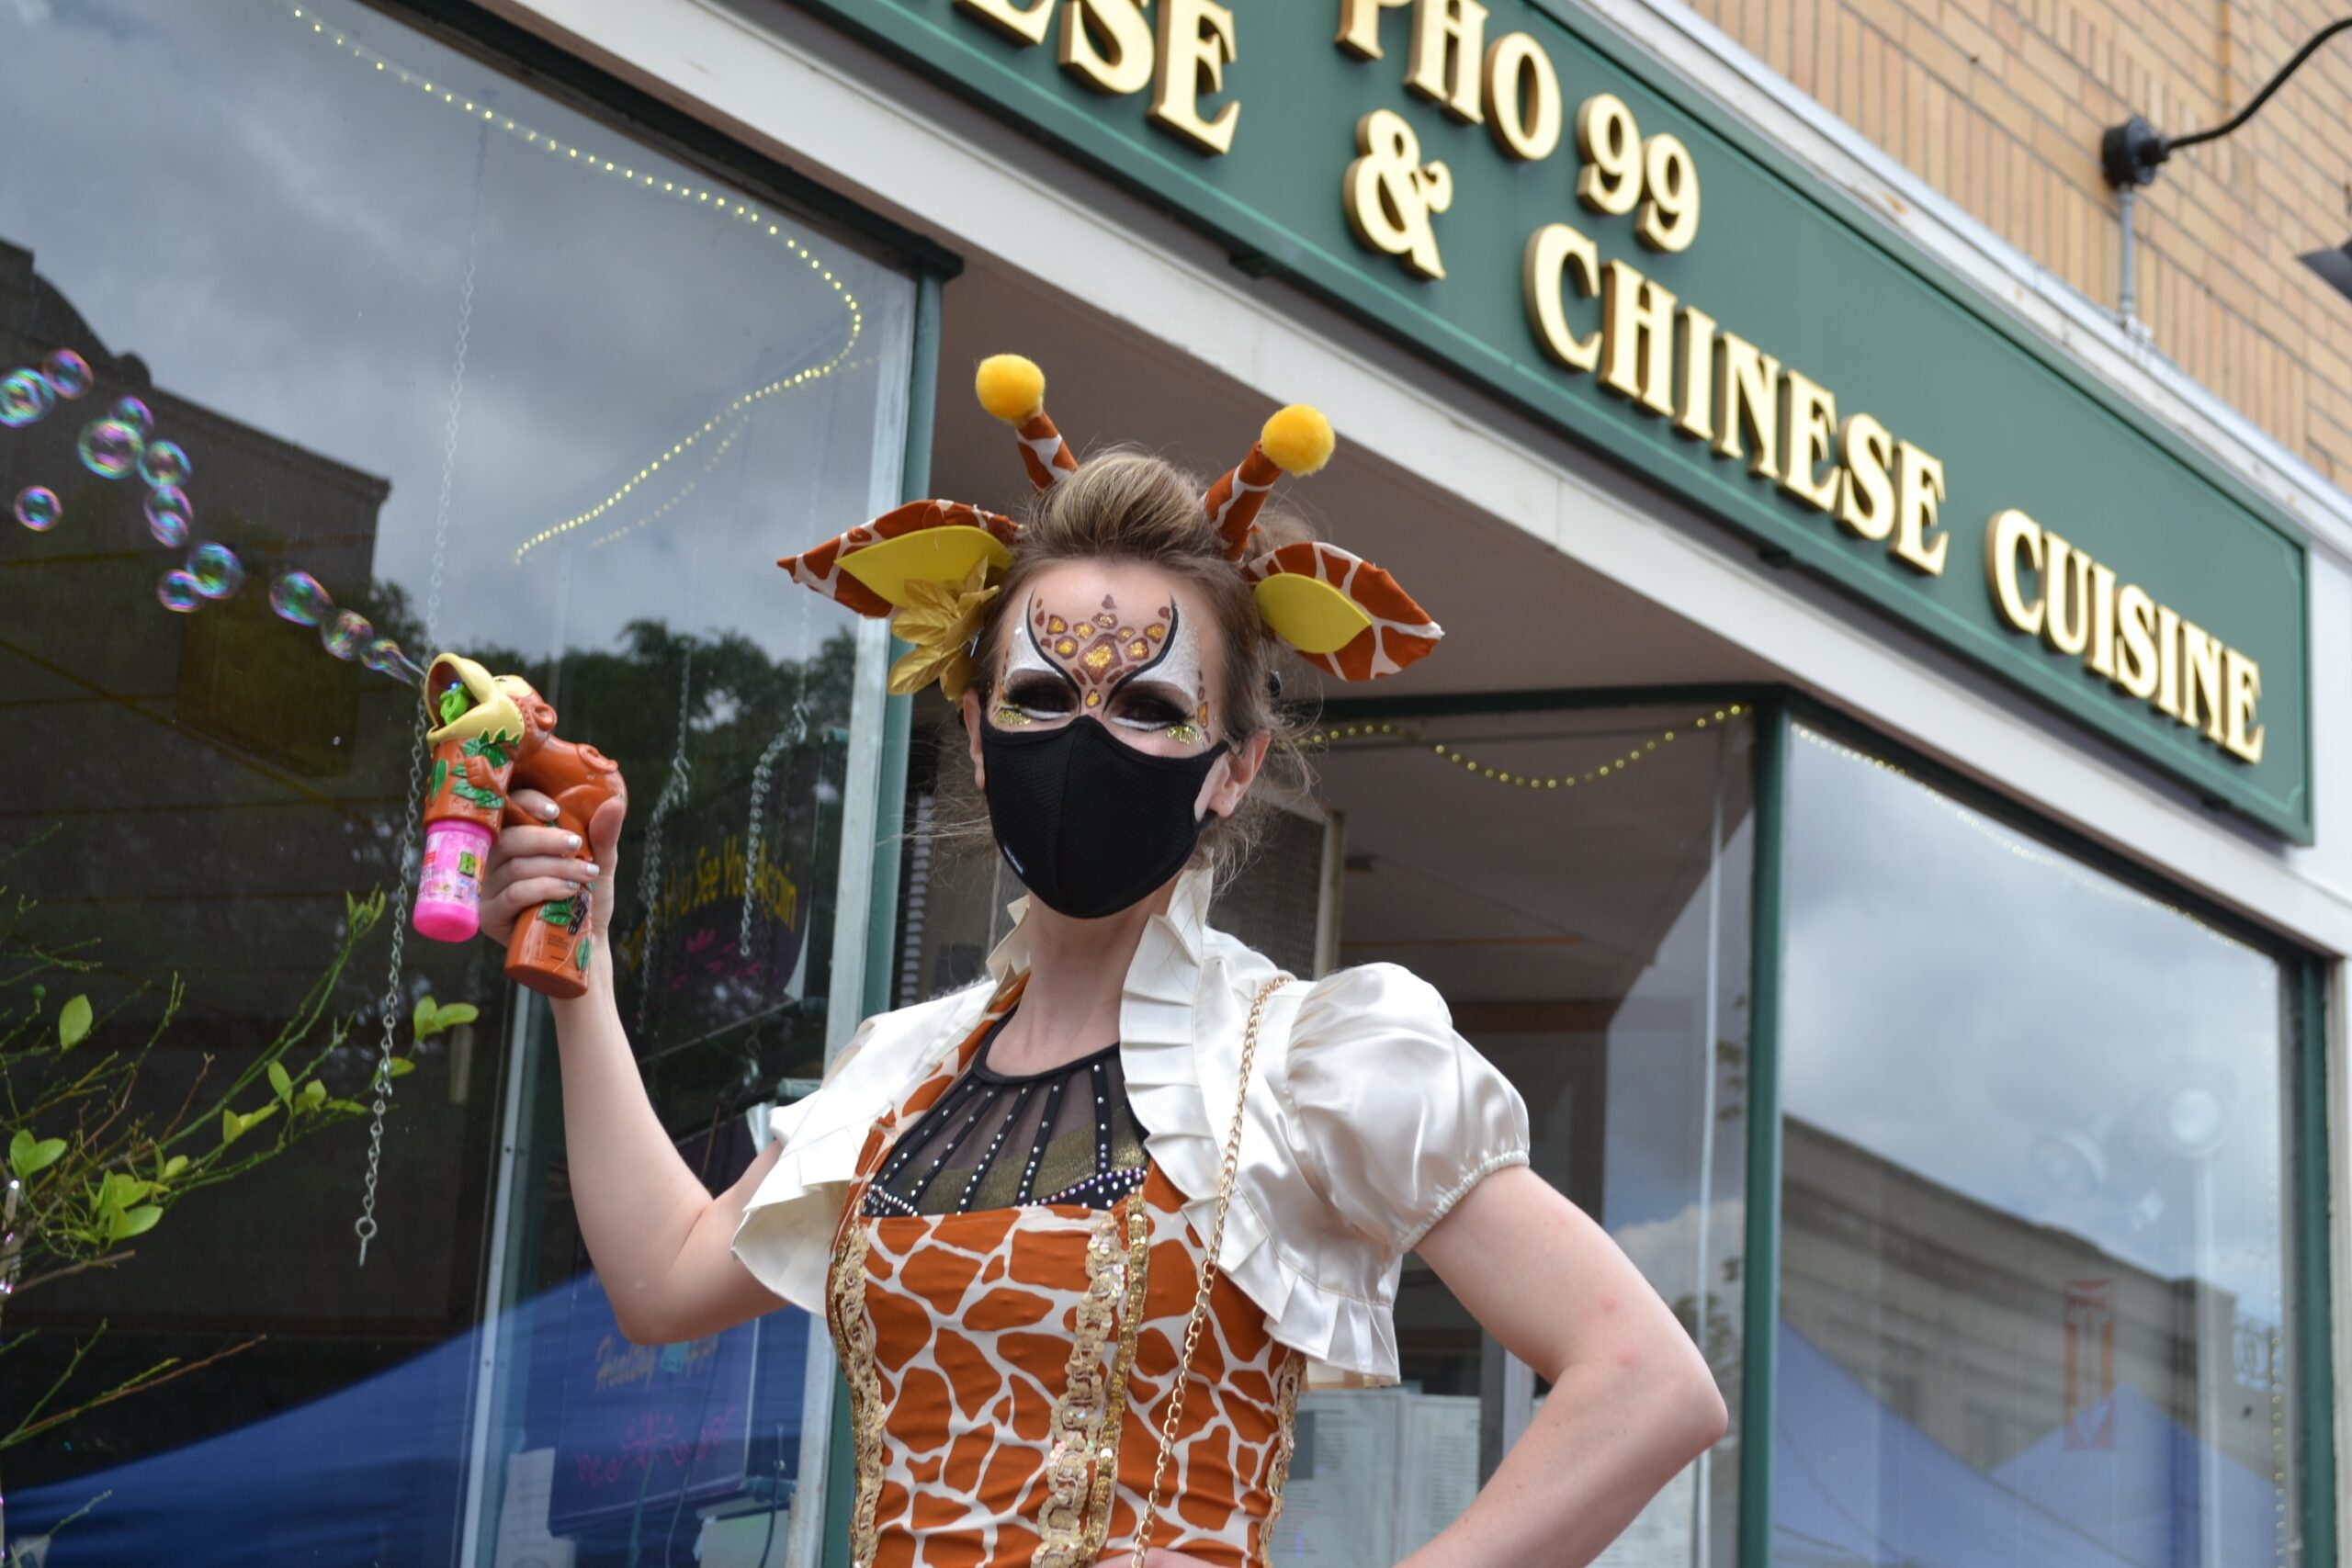 Performer with painted face in front of Chinese restaurant